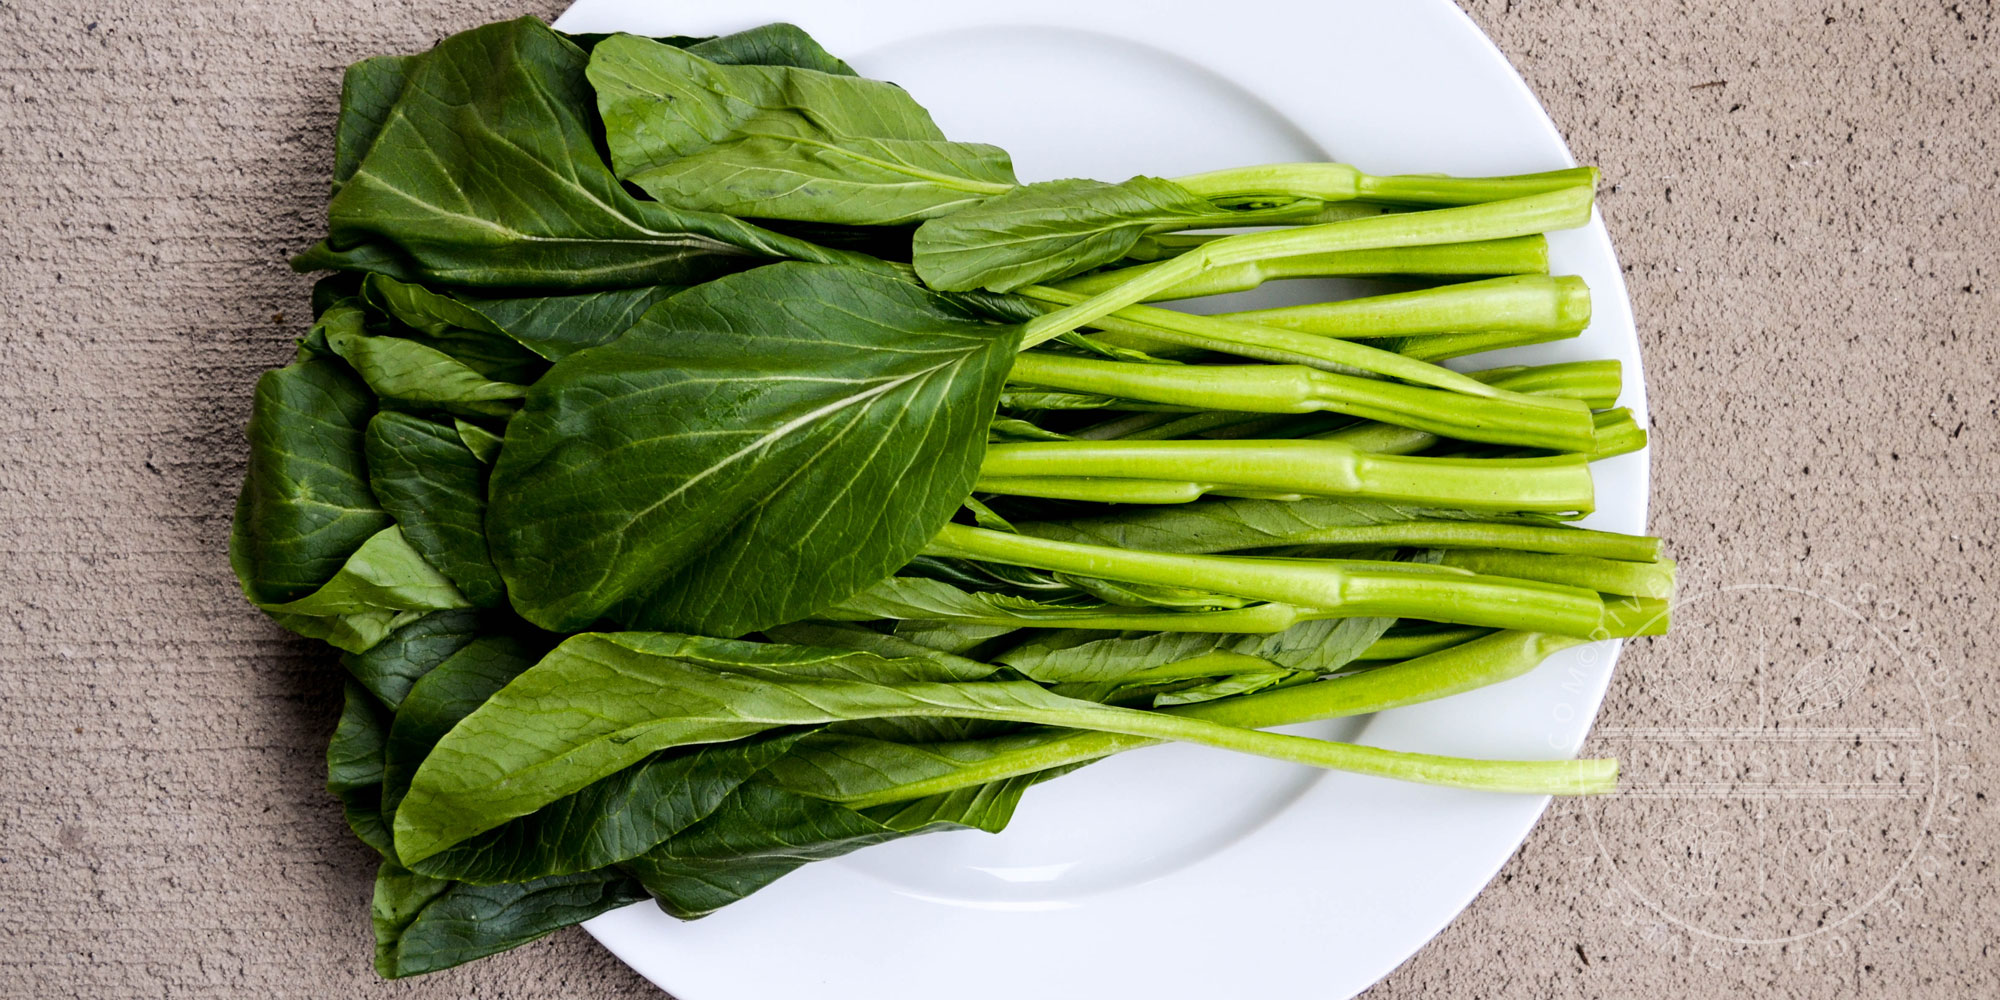 Choy sum bunch on a white plate - Diversivore.com